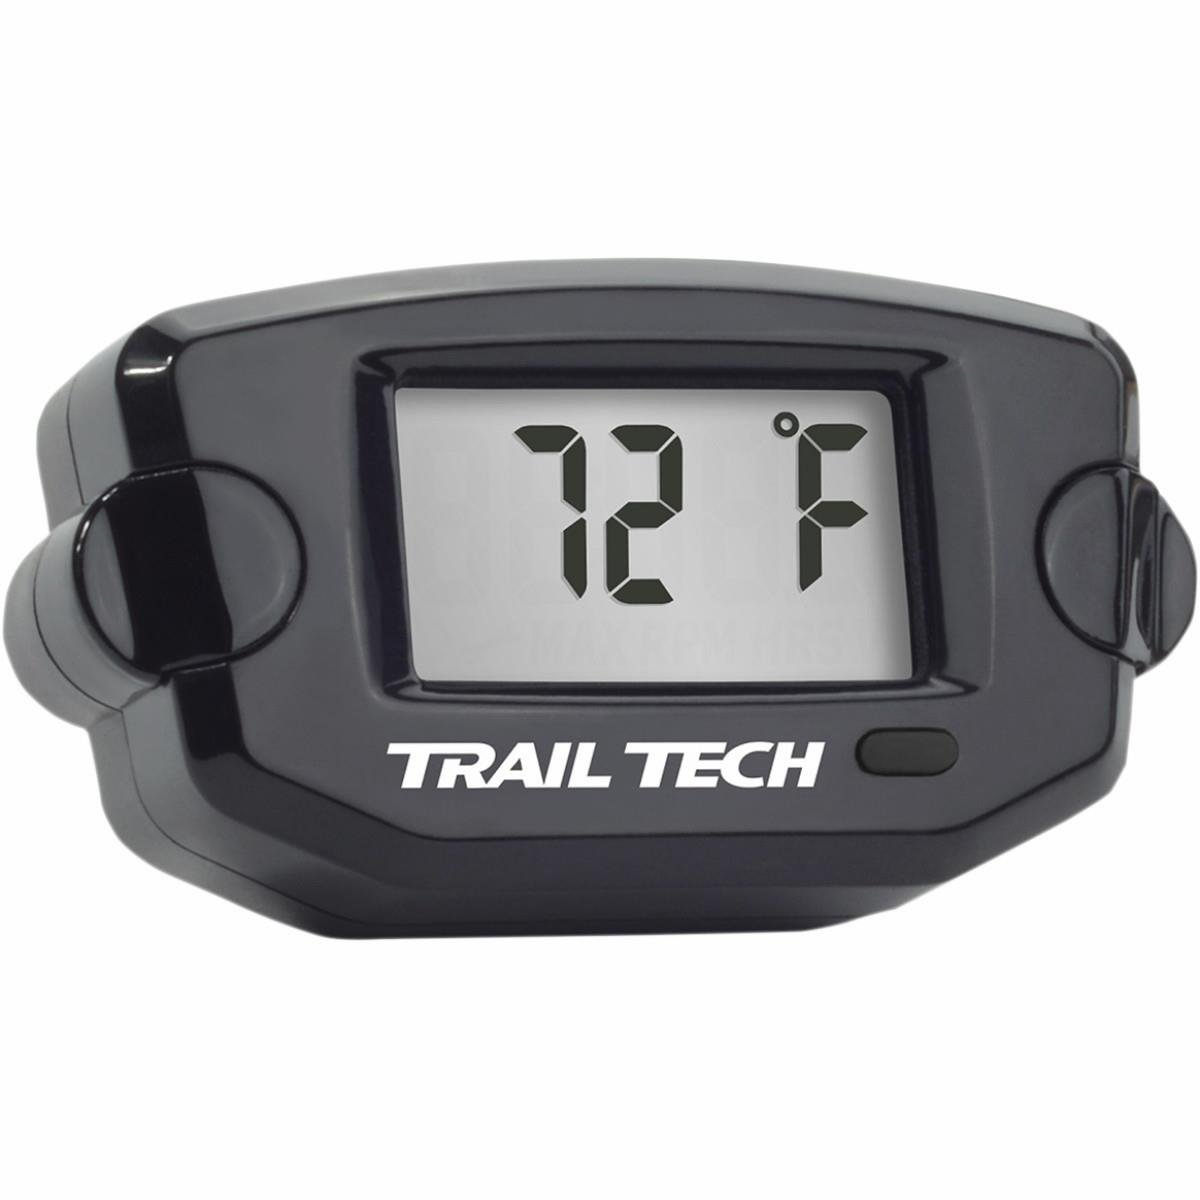 Trail Tech Panel Mount Universal Temperature Meter w/ Spark Plug Sensor for Air Cooled Engines - 10mm - Black 732ET1